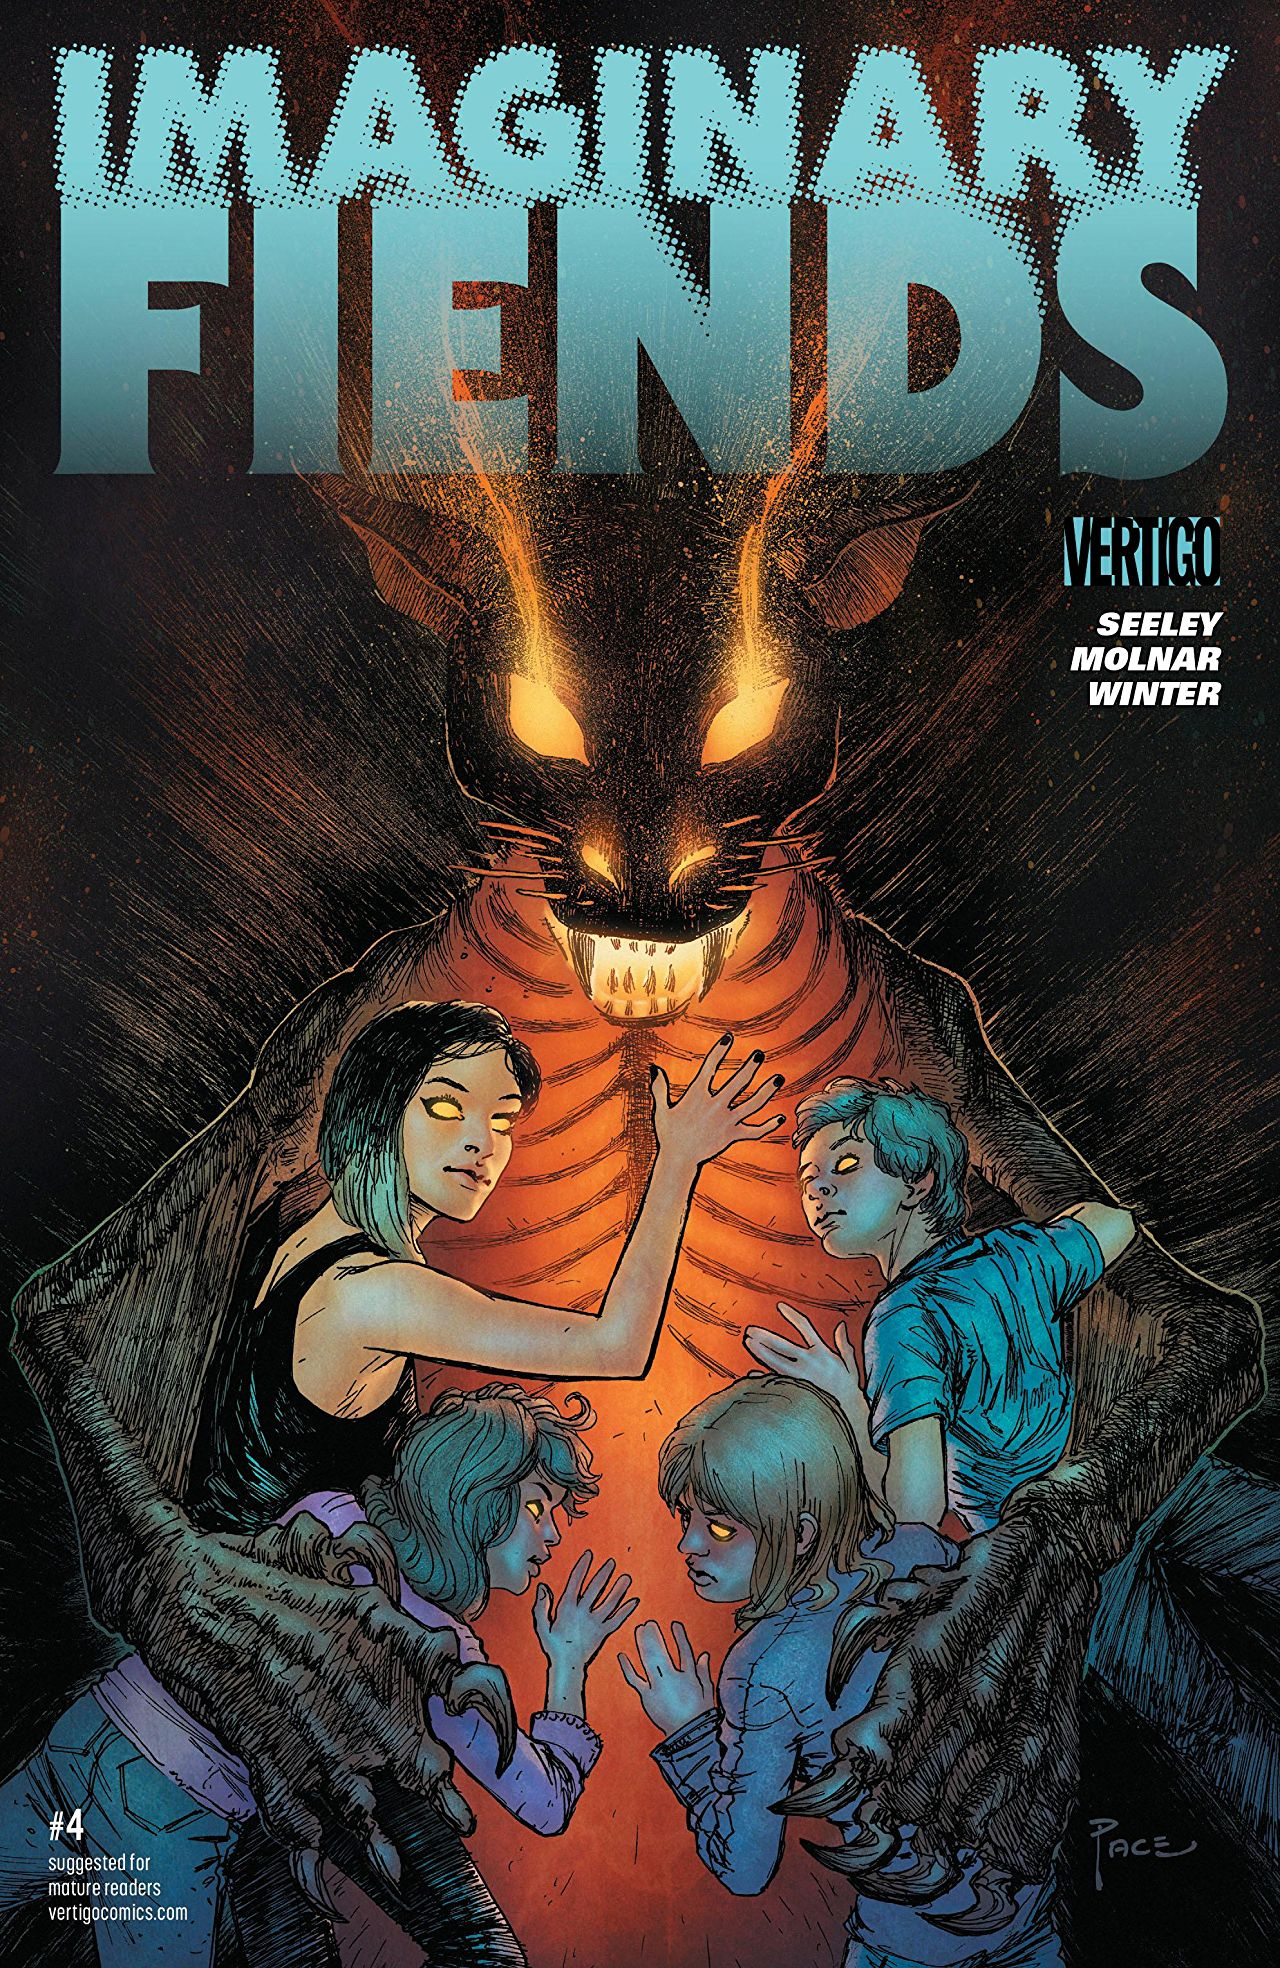 Imaginary Fiends Vol 1 4